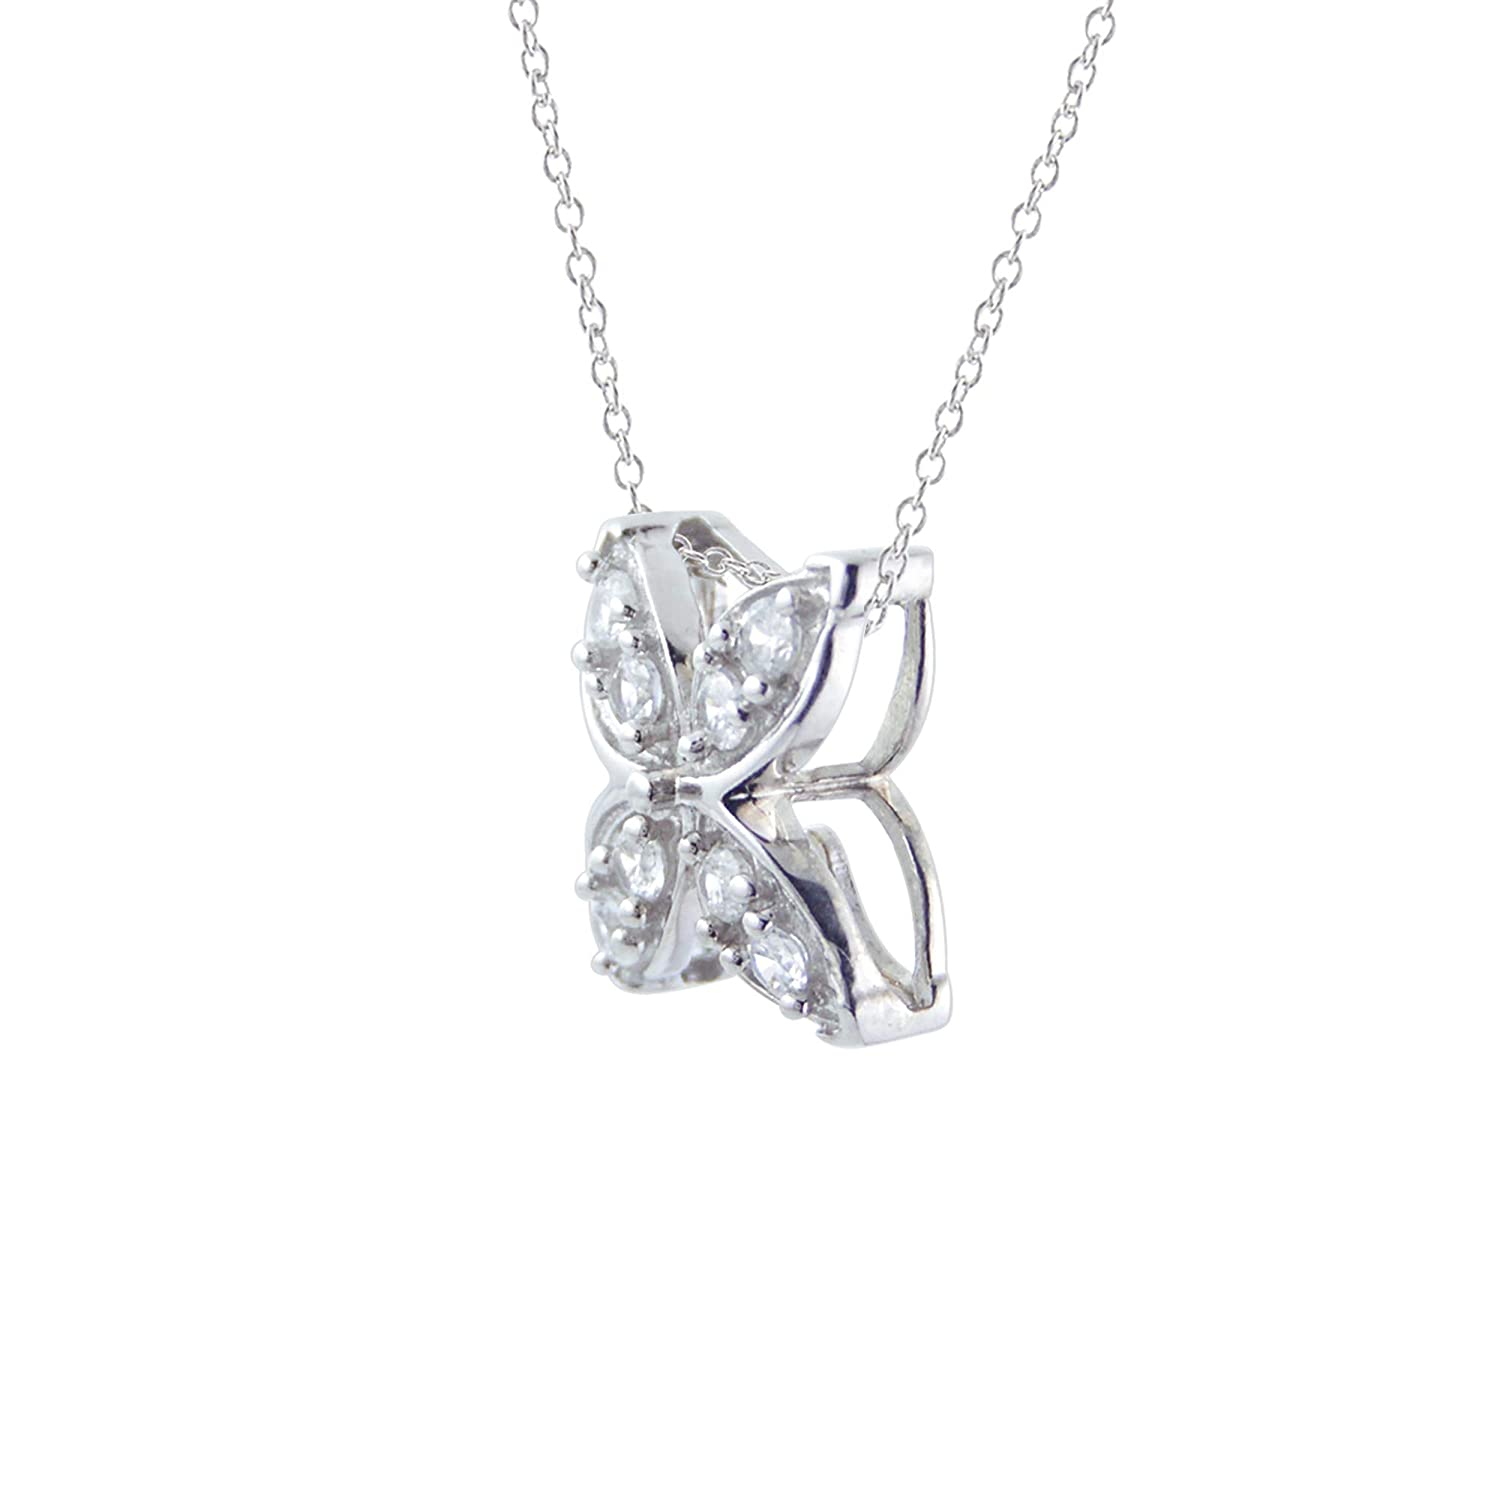 Diamond Scotch 0.18 Ct Round Simulated Diamond Cubic Zirconia Clover Flower Pendant Necklace in 14k White Gold Over